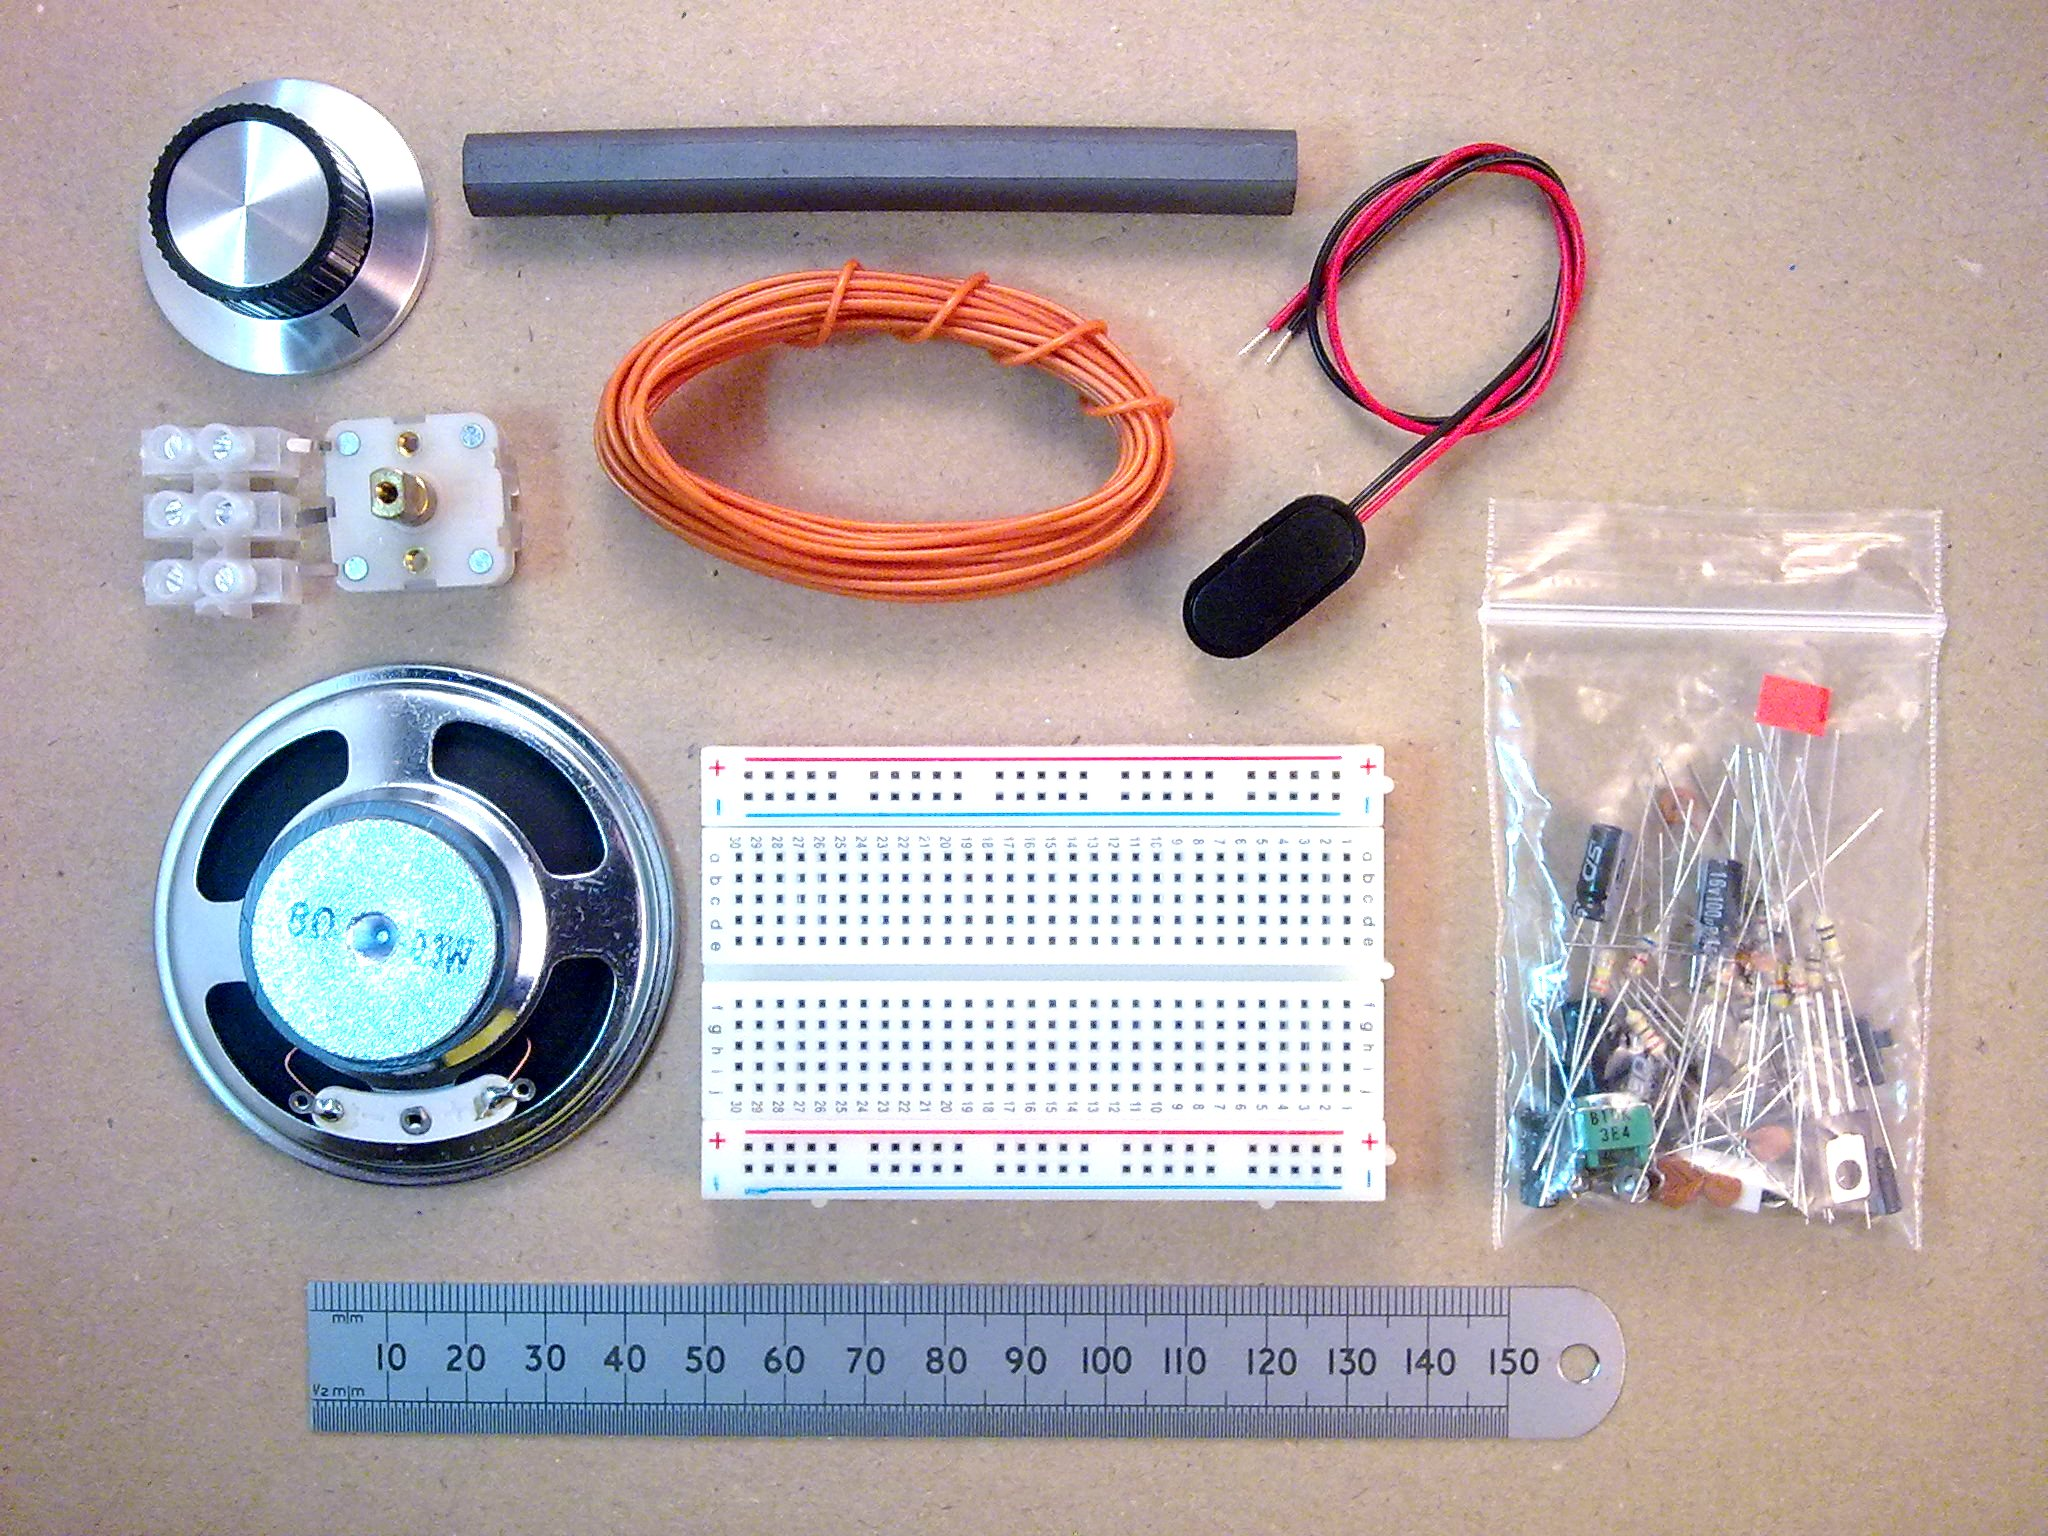 Useful Components Breadboard Transistor Radio Am Circuit Parts Included In The Kit